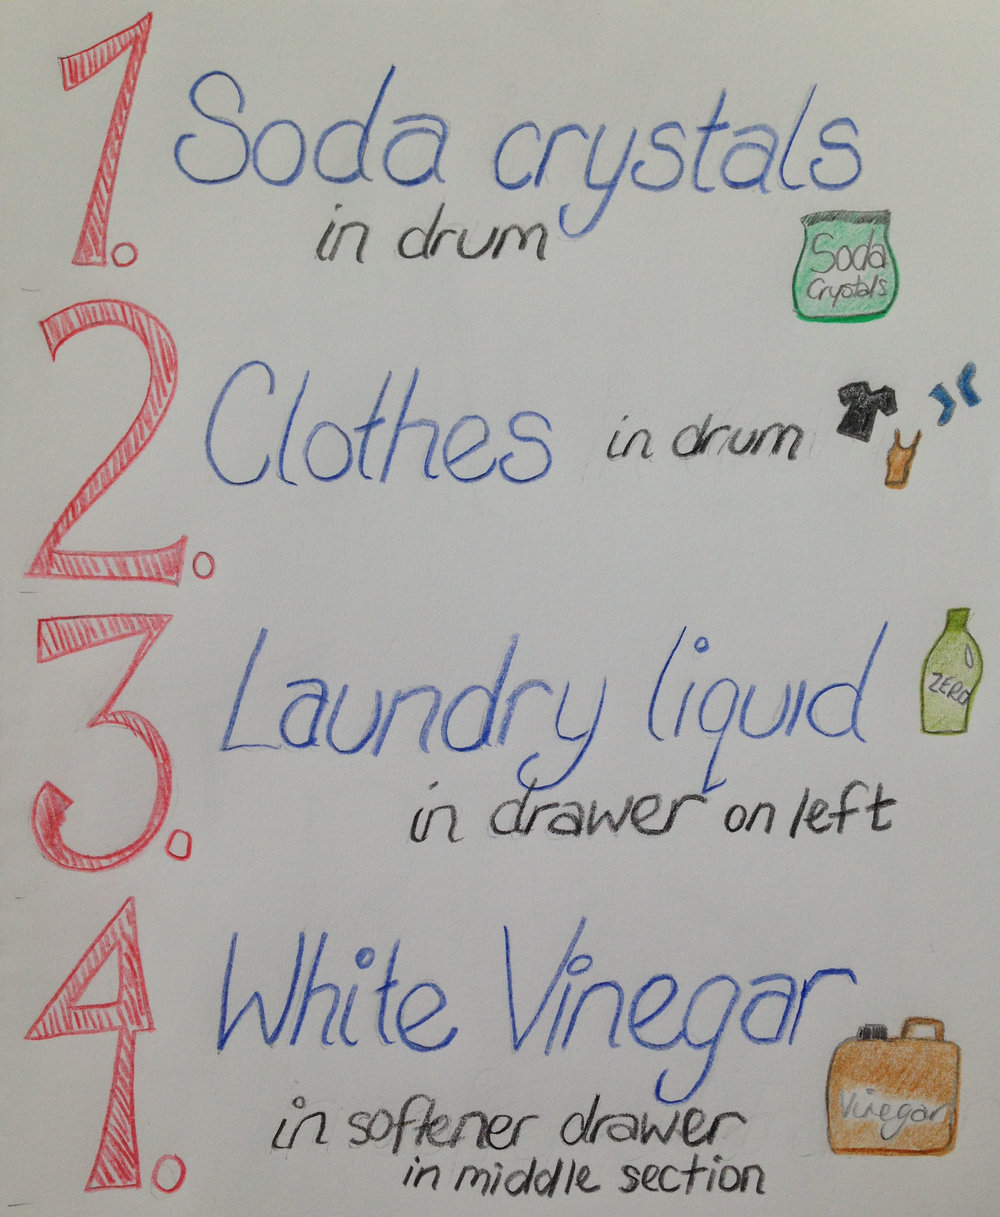 ^  Checklist for the new laundry routine.